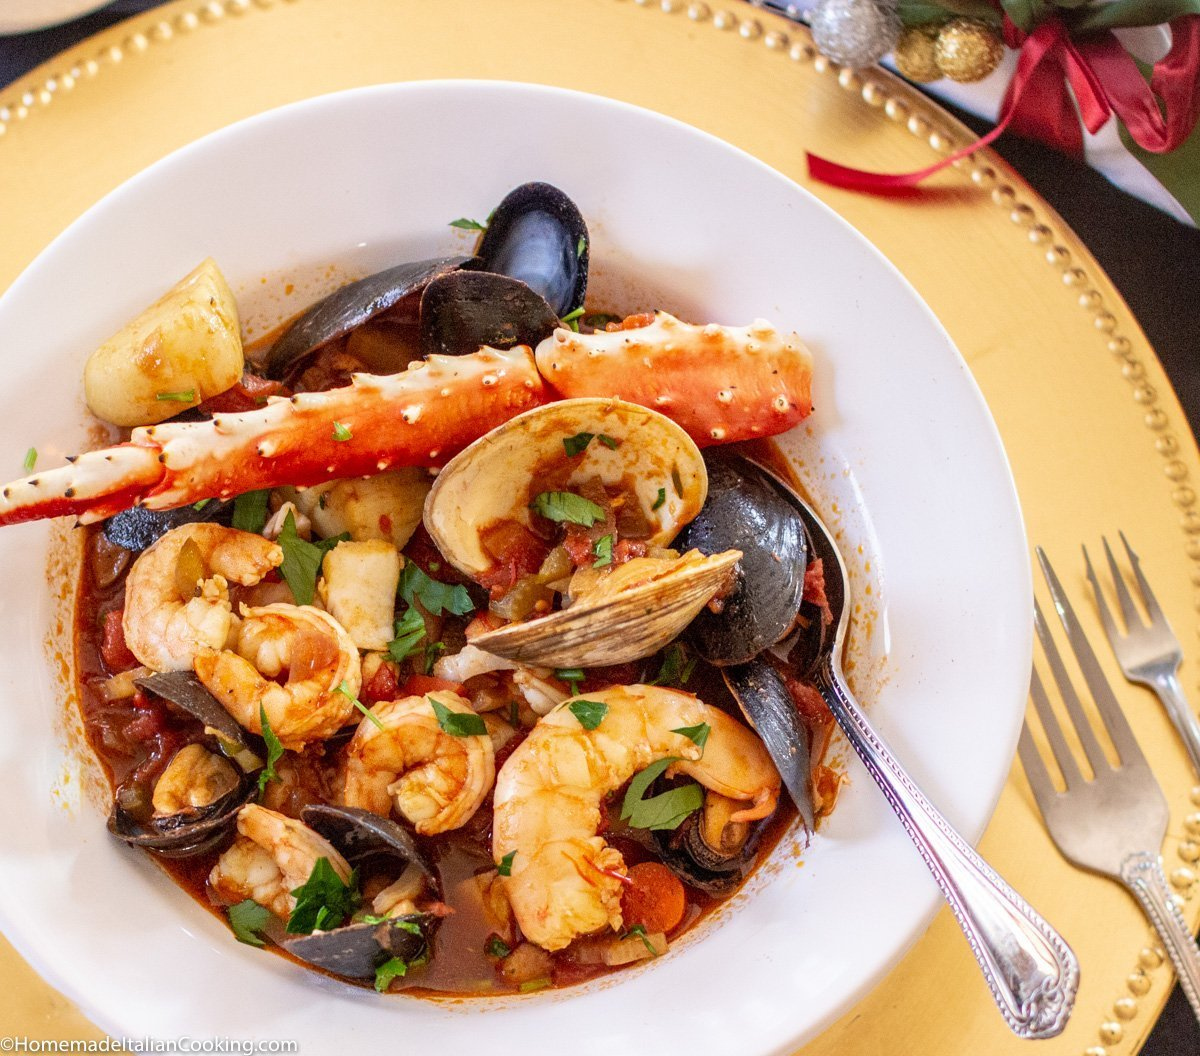 Cioppino A Special Occasion Italian Seafood Soup For Christmas Eve Homemade Italian Cooking